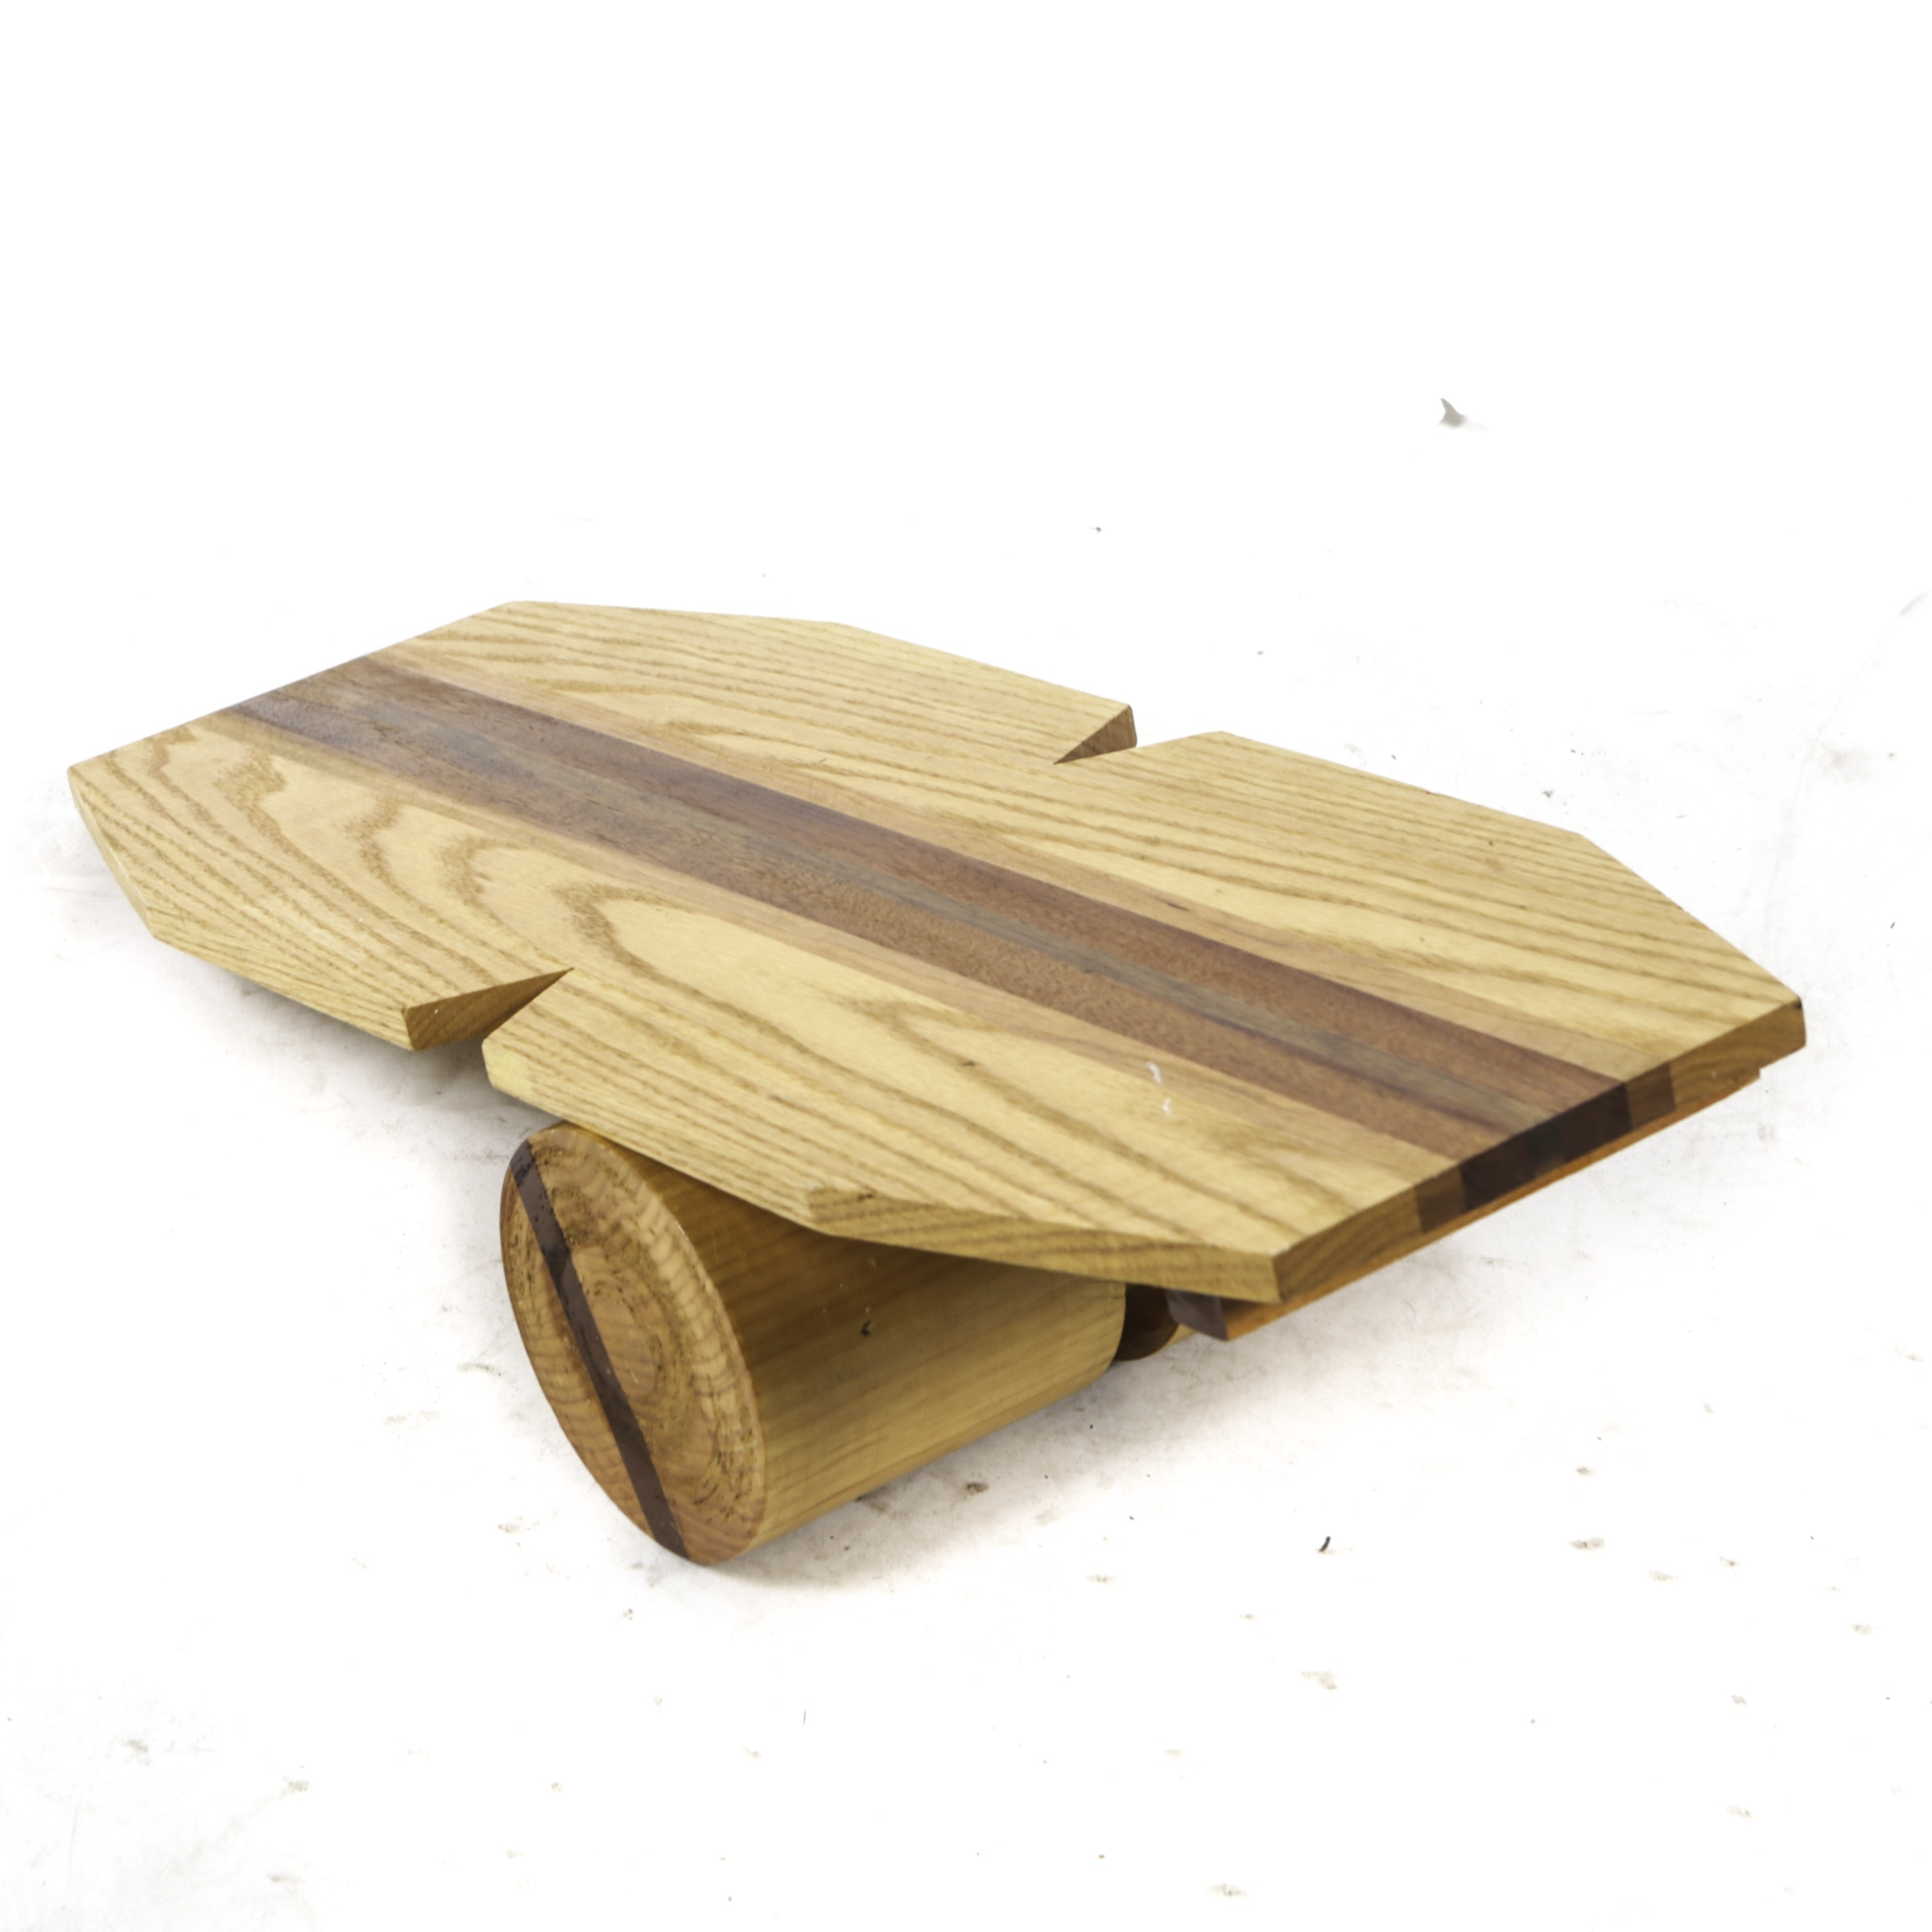 Handcrafted Wooden Balance Board